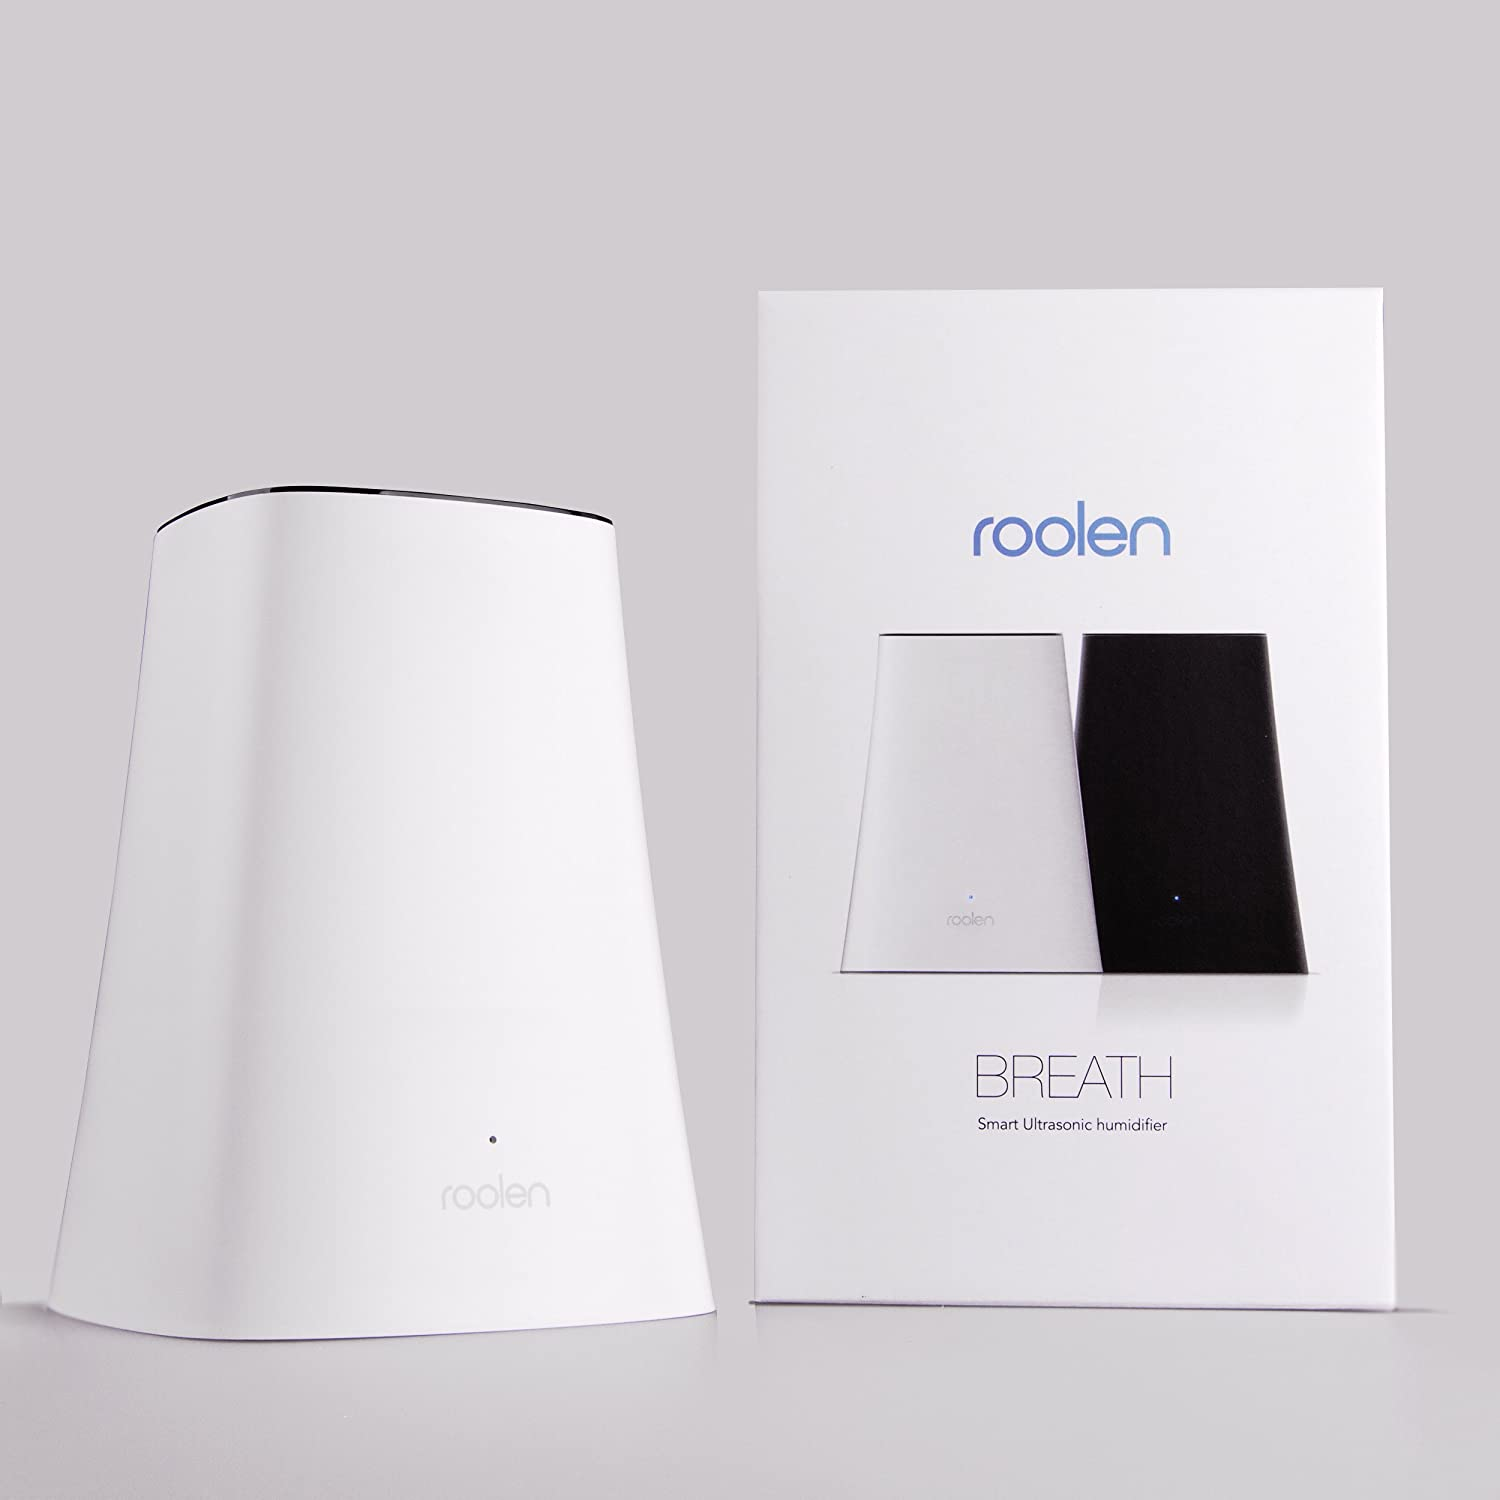 Amazon.co.jp : BR01/W Breath Cool-Mist Humidifier クールミスト 加湿器 Roolen社  White【並行輸入】 : ホーム&キッチン